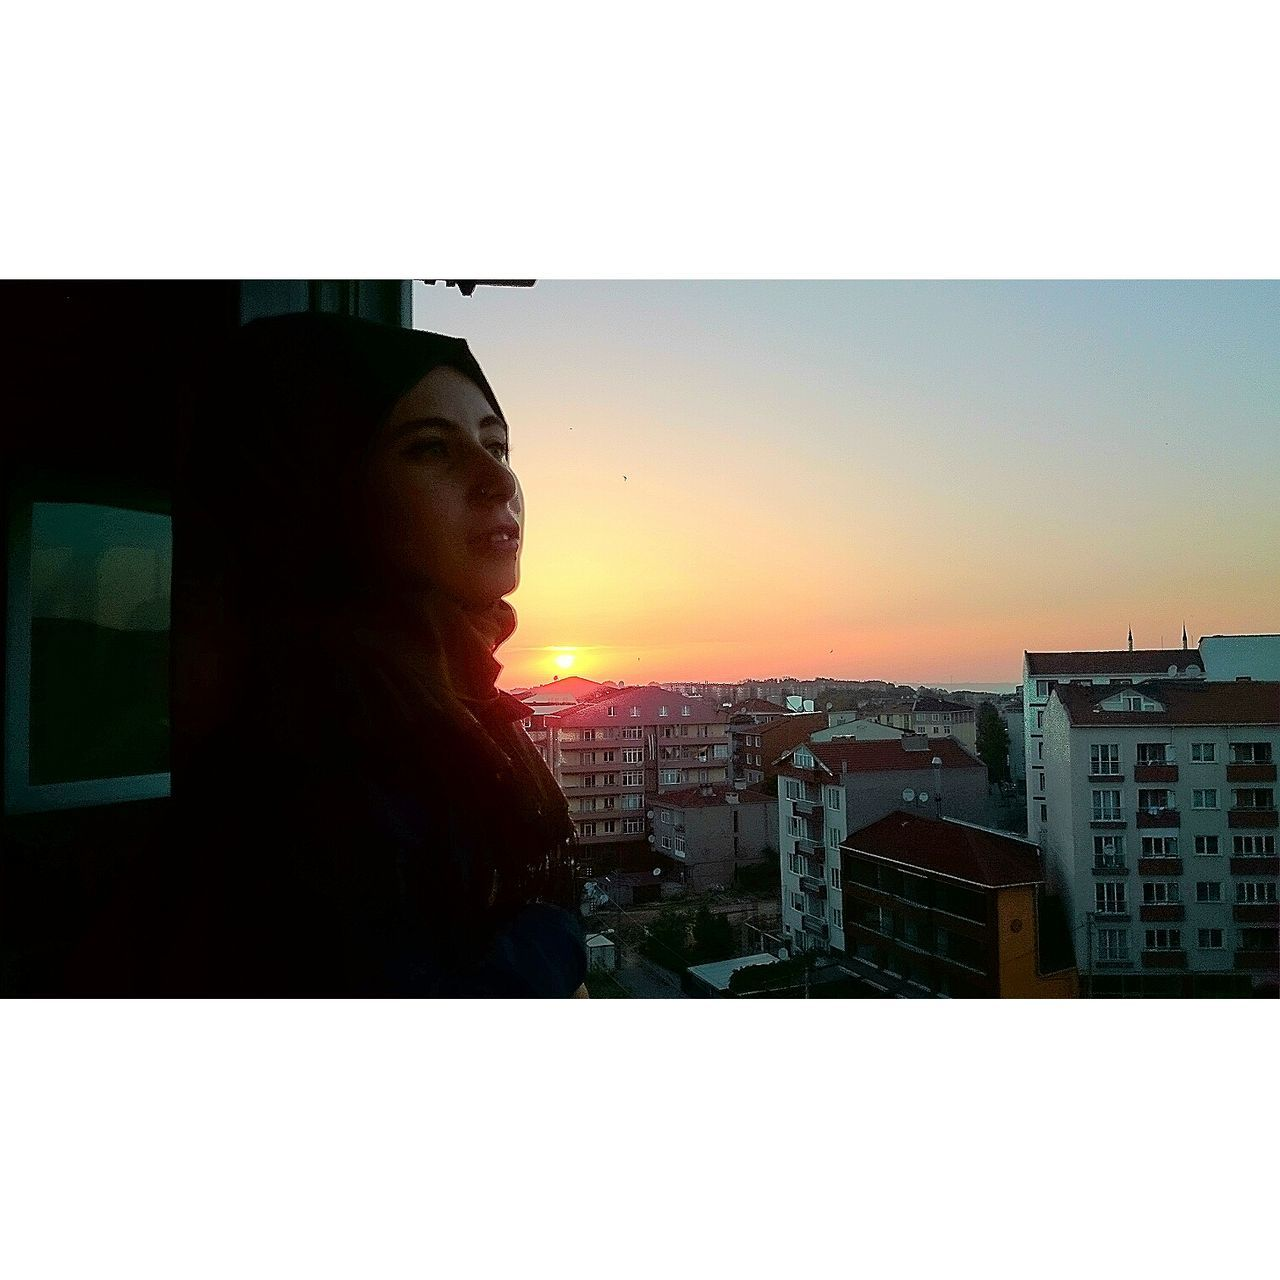 sunset, building exterior, architecture, built structure, city, one person, outdoors, clear sky, cityscape, real people, sky, young women, one young woman only, young adult, day, people